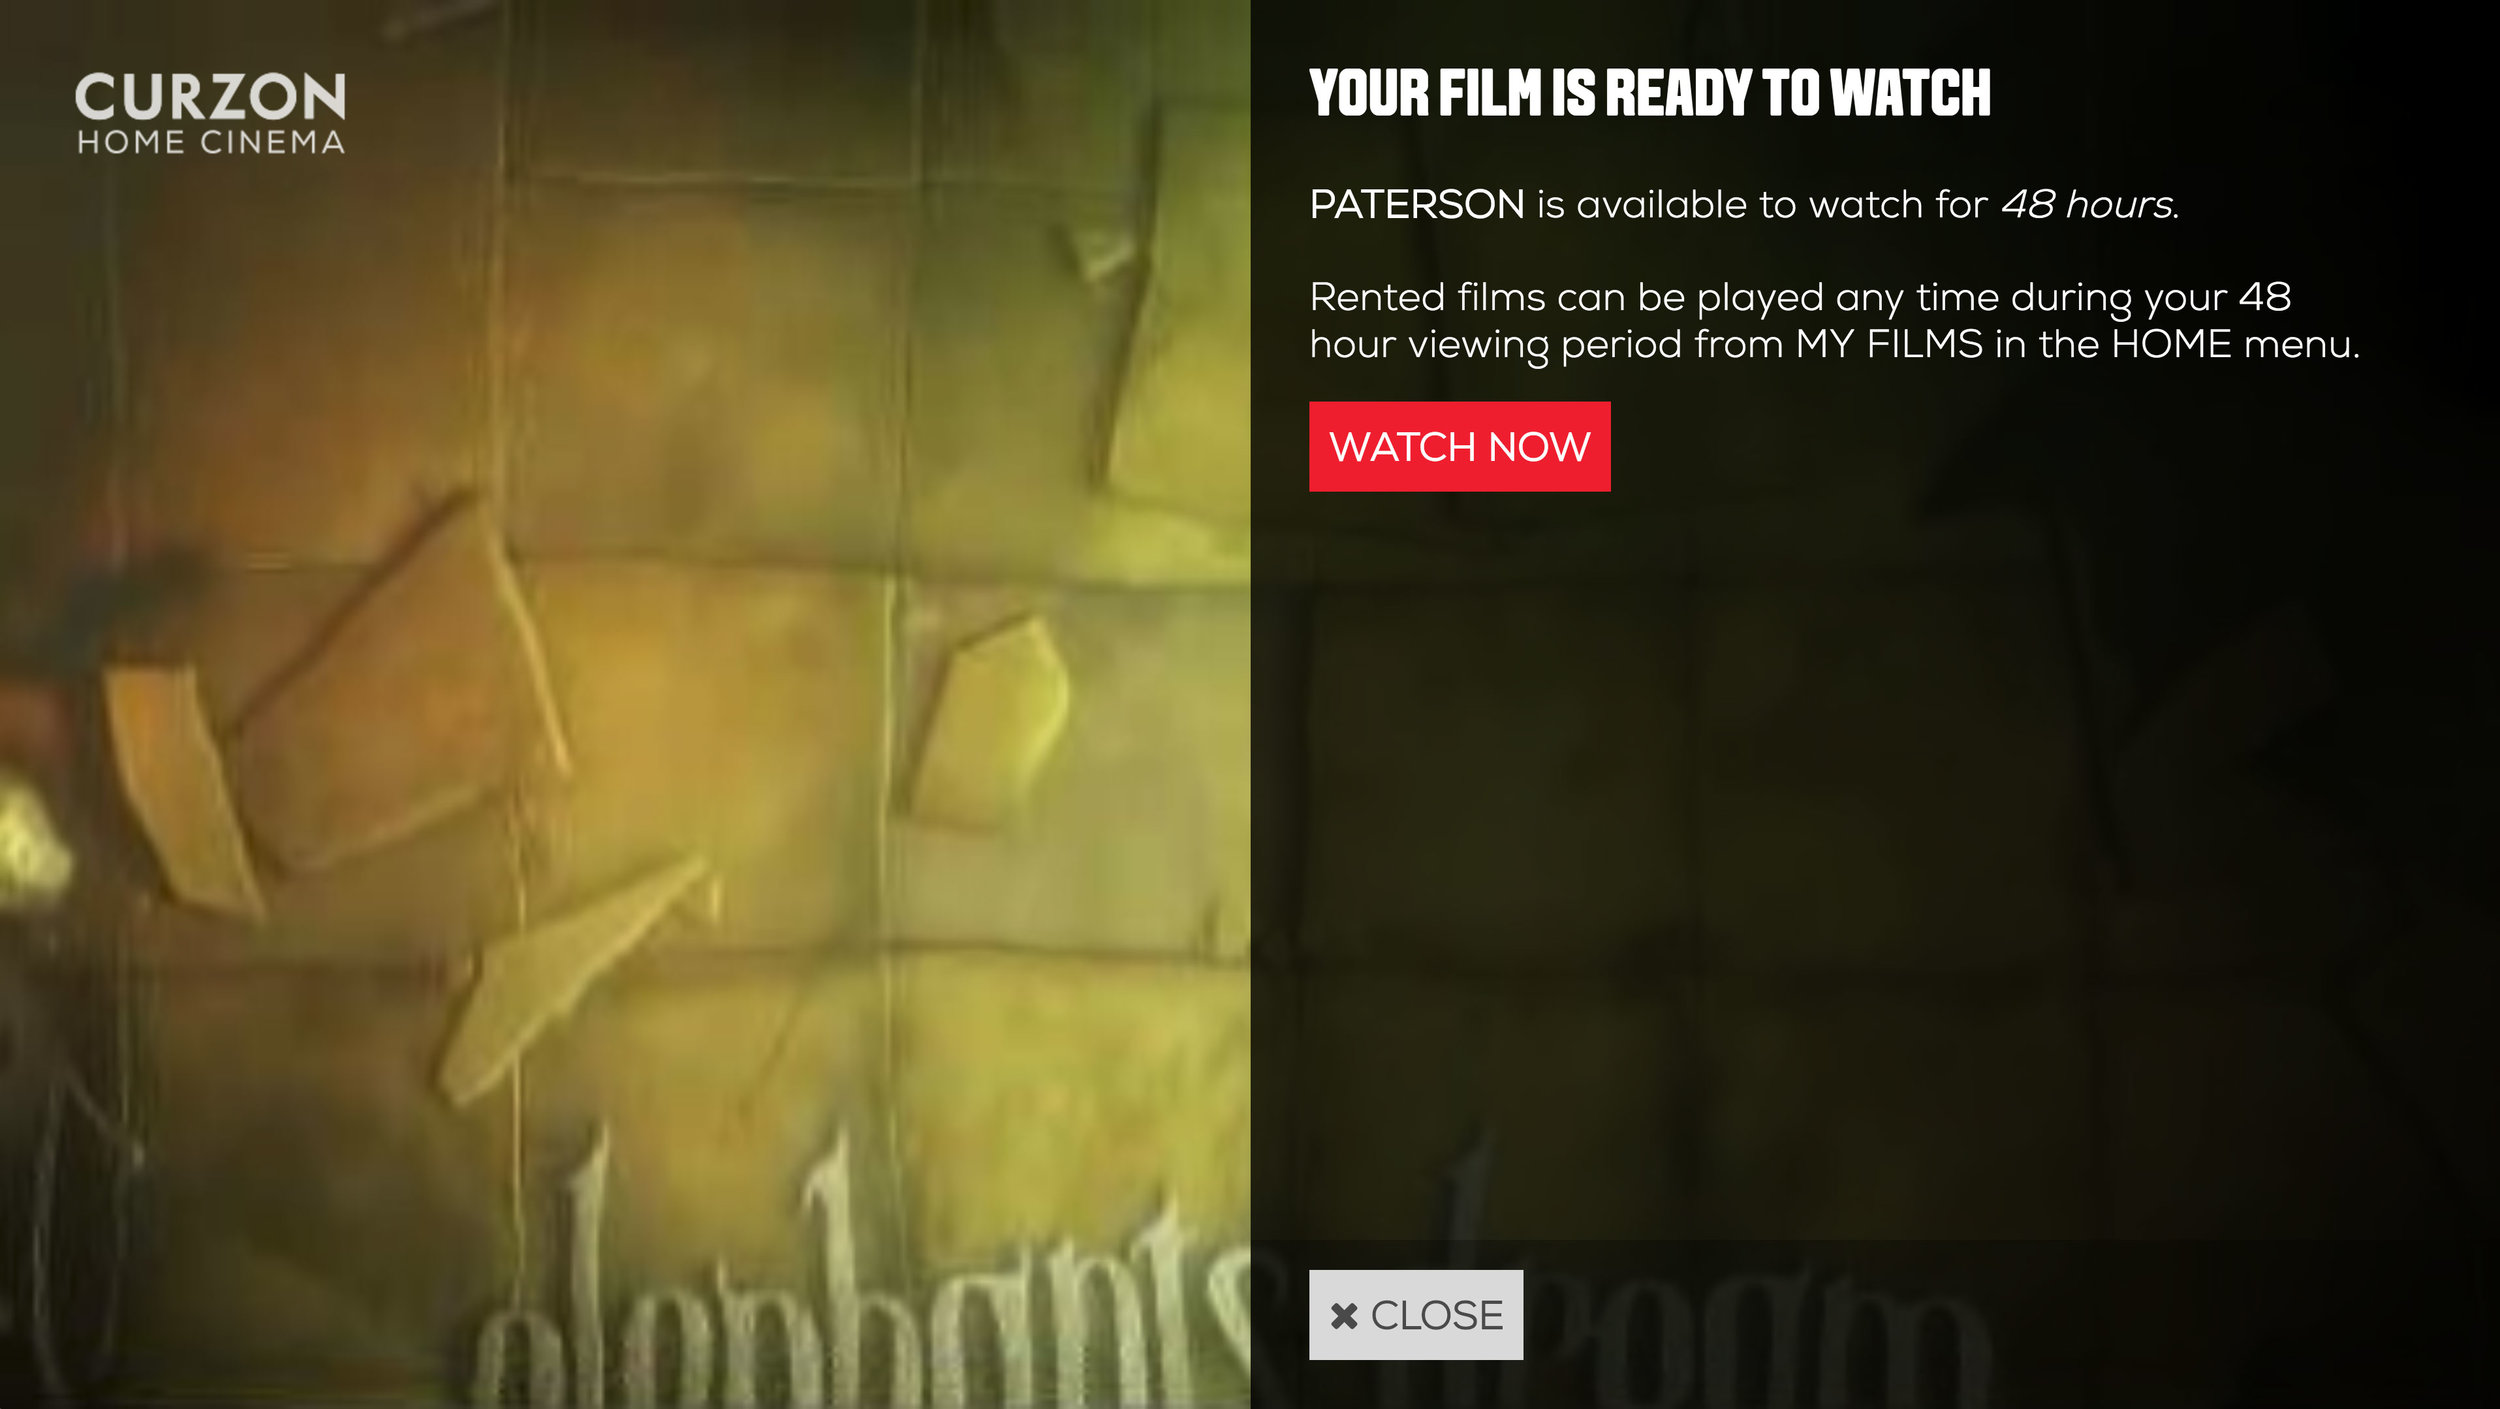 7. Select 'Watch Now' and enjoy your film!